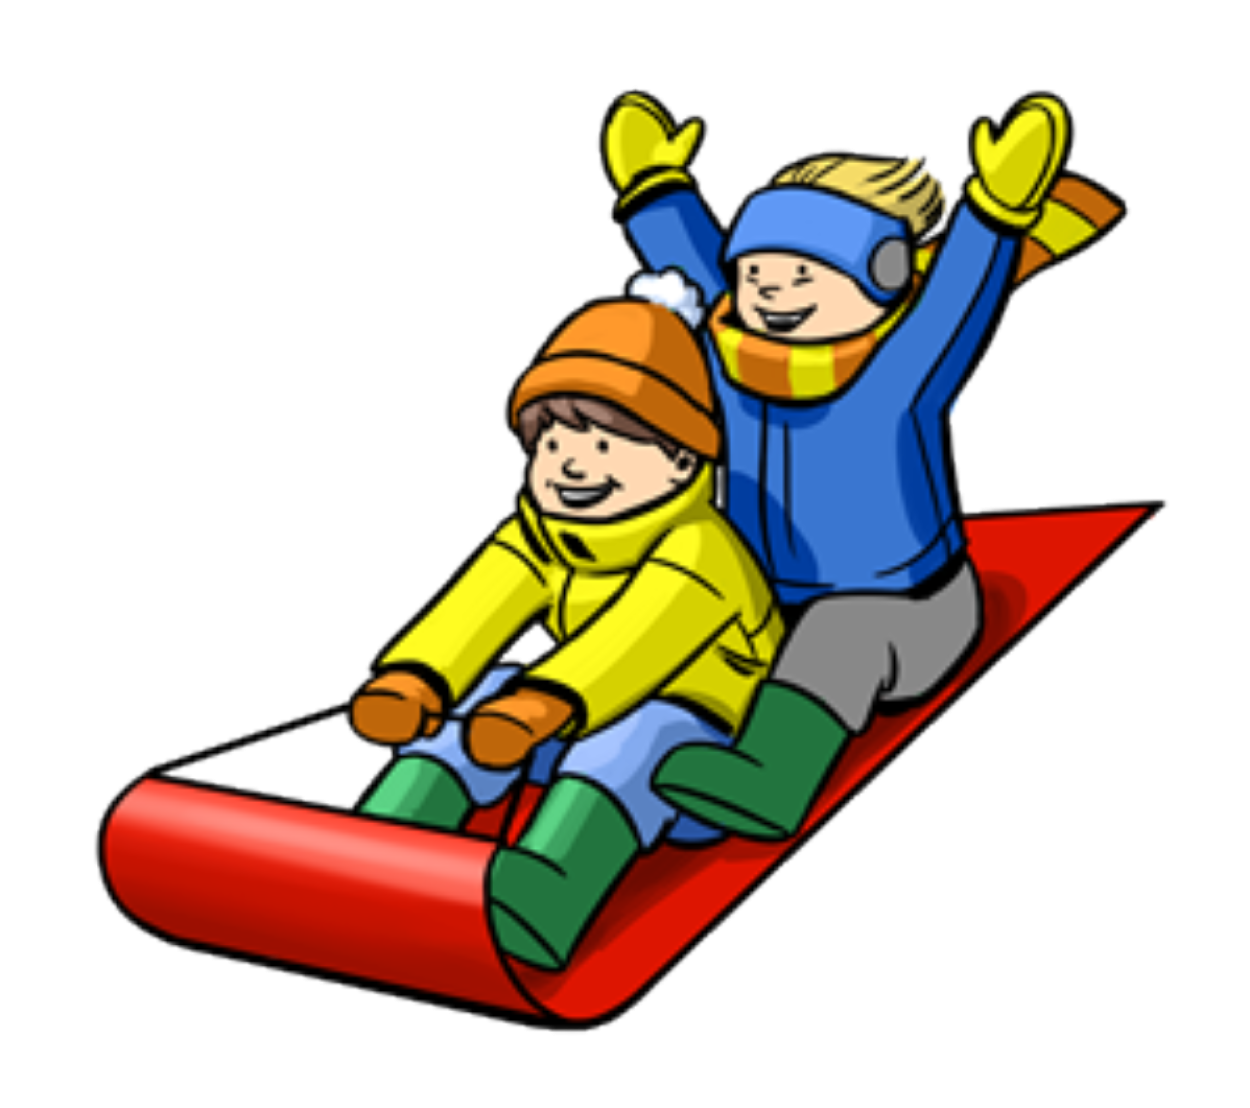 clip art royalty free library Breathe clipart recreation. Winter obstacle course kidding